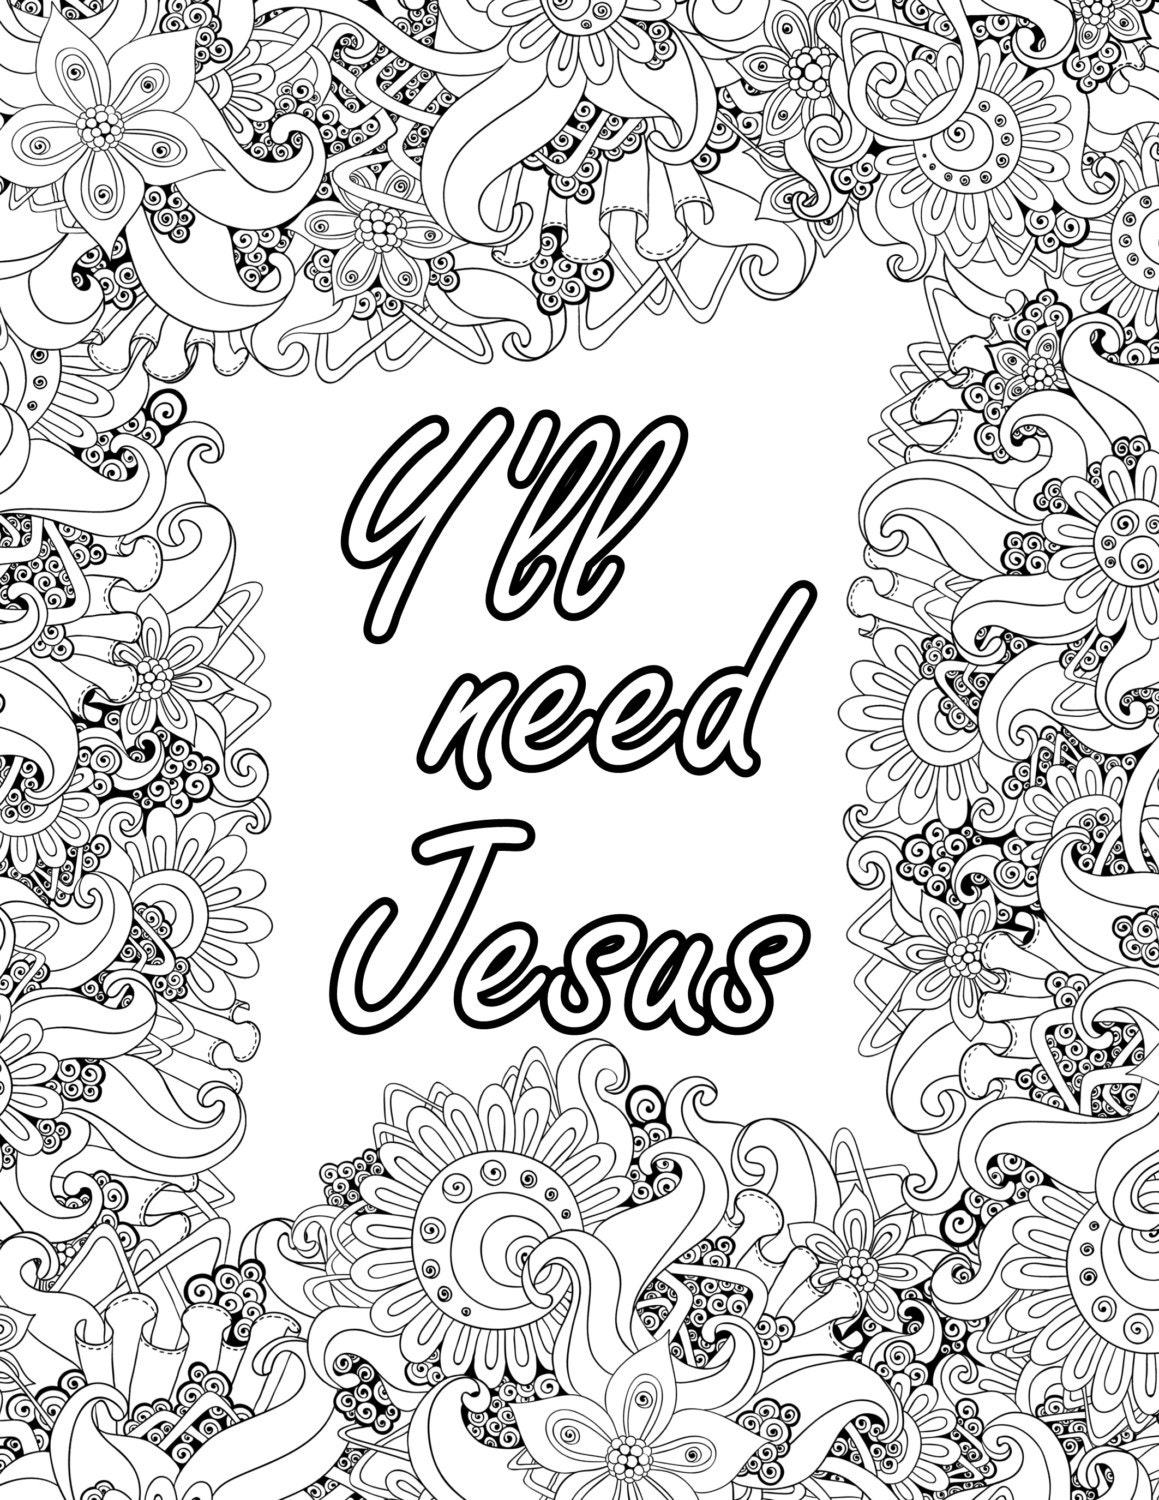 teen spiritual coloring pages - photo#24